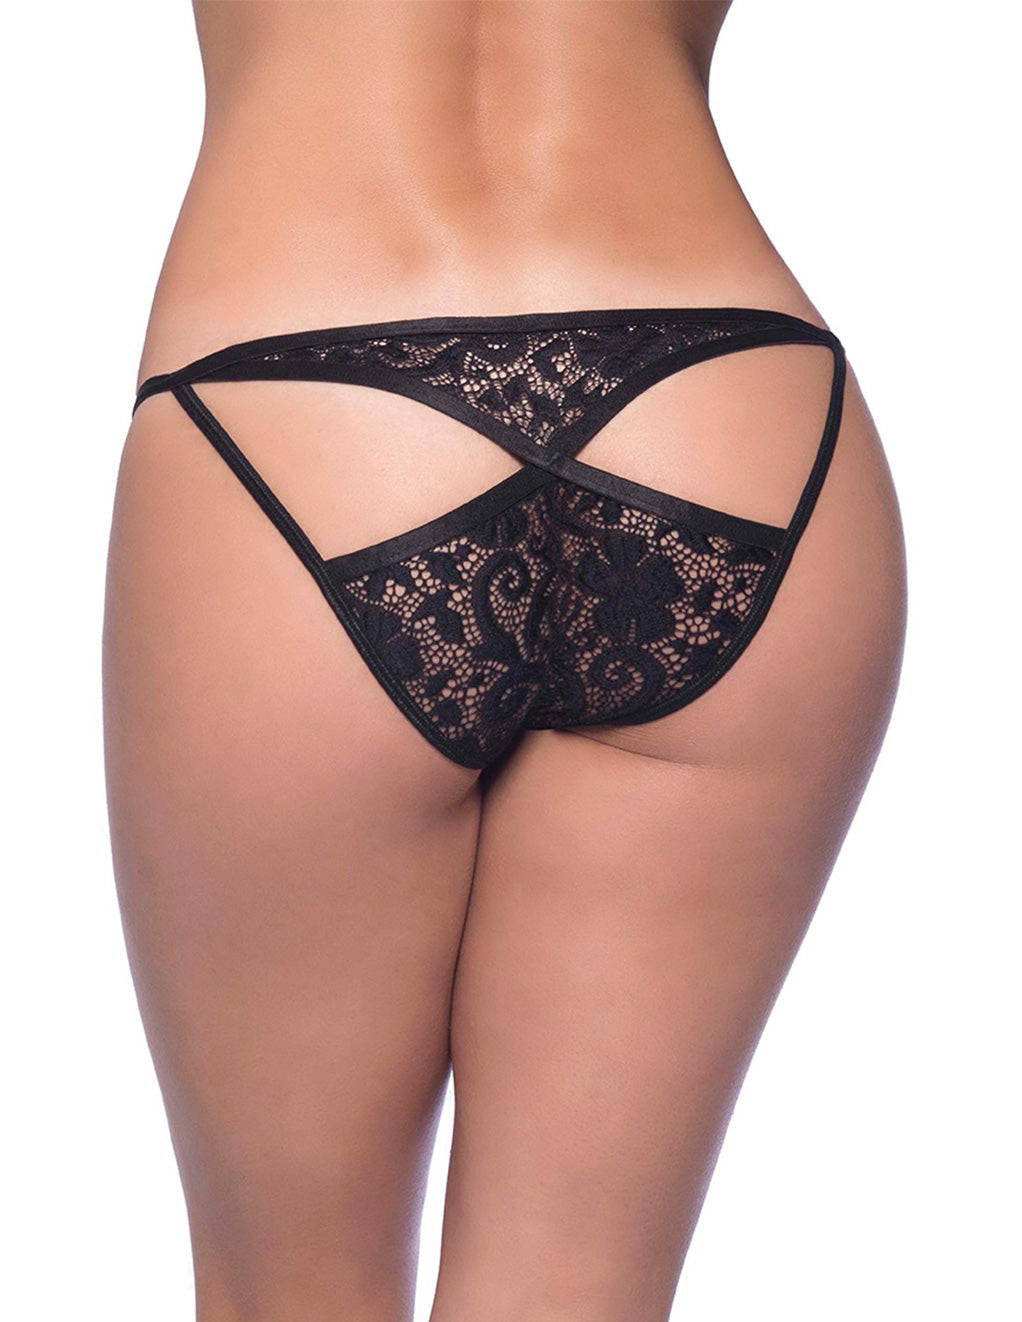 Oh La La Cheri Split Front Lace Bikini With Elastic Trimmed Keyholes Black Back